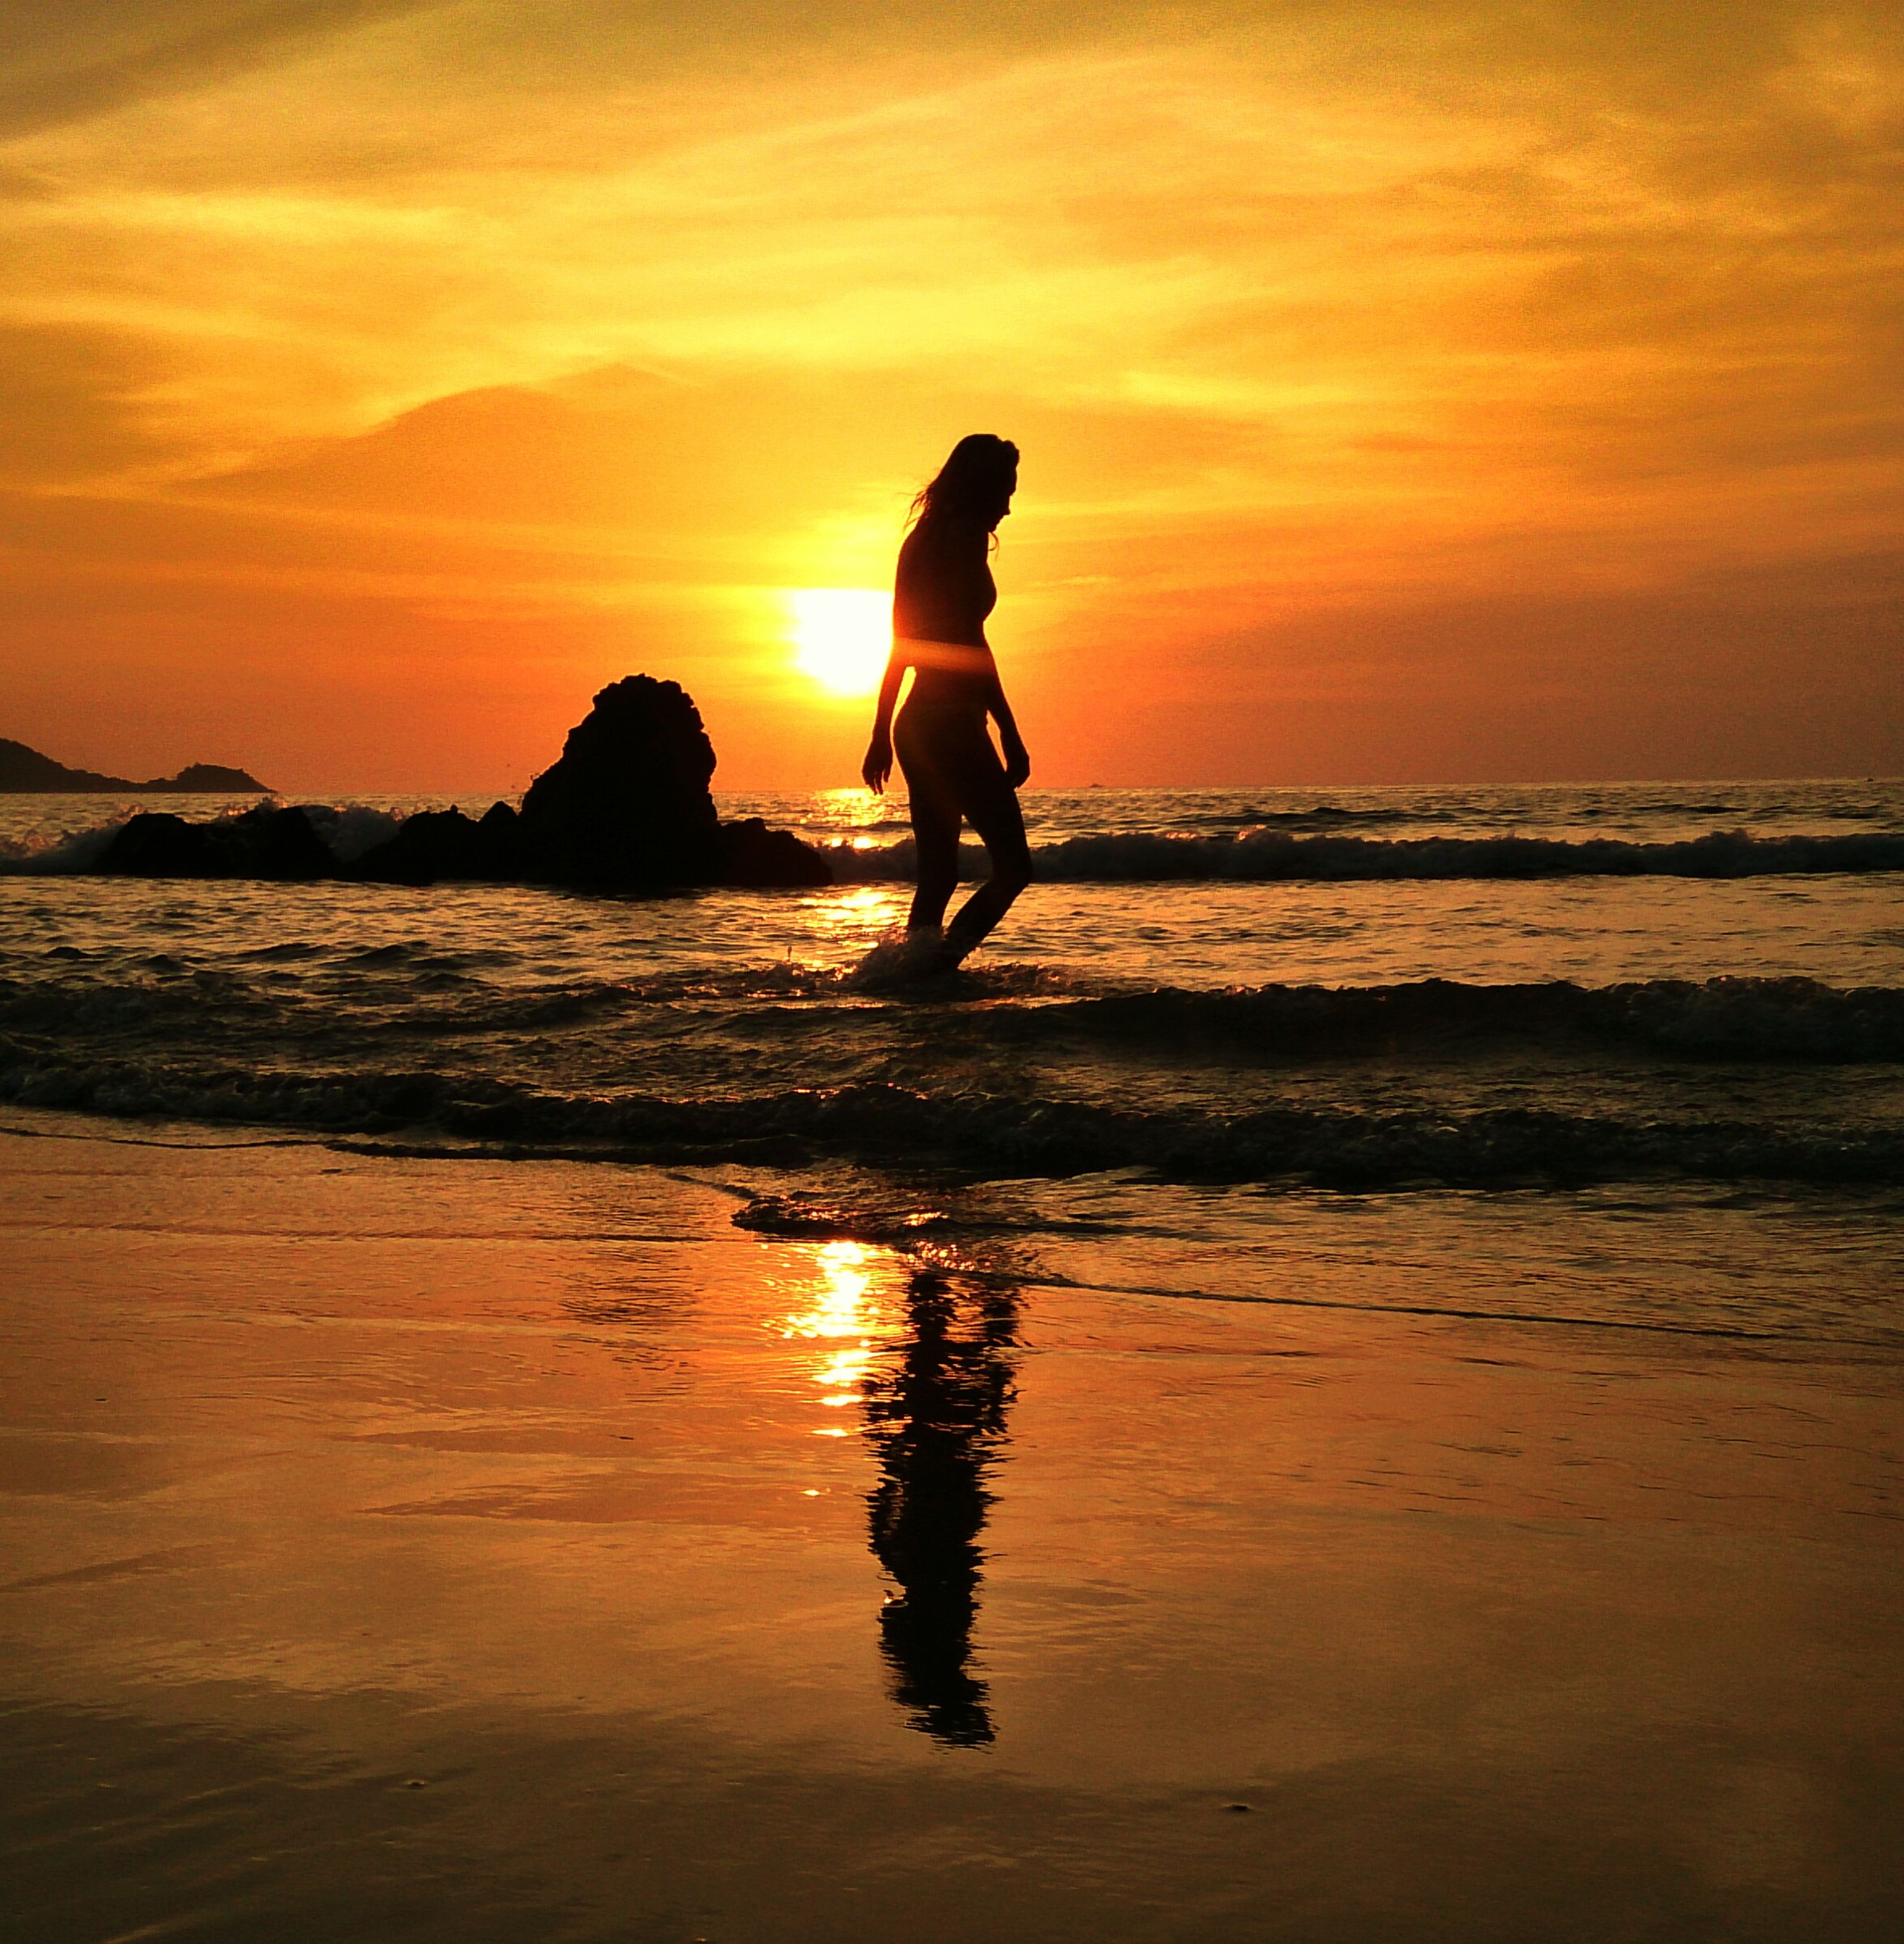 sunset, sea, water, beach, orange color, shore, silhouette, horizon over water, sky, scenics, beauty in nature, reflection, leisure activity, tranquil scene, lifestyles, idyllic, tranquility, wave